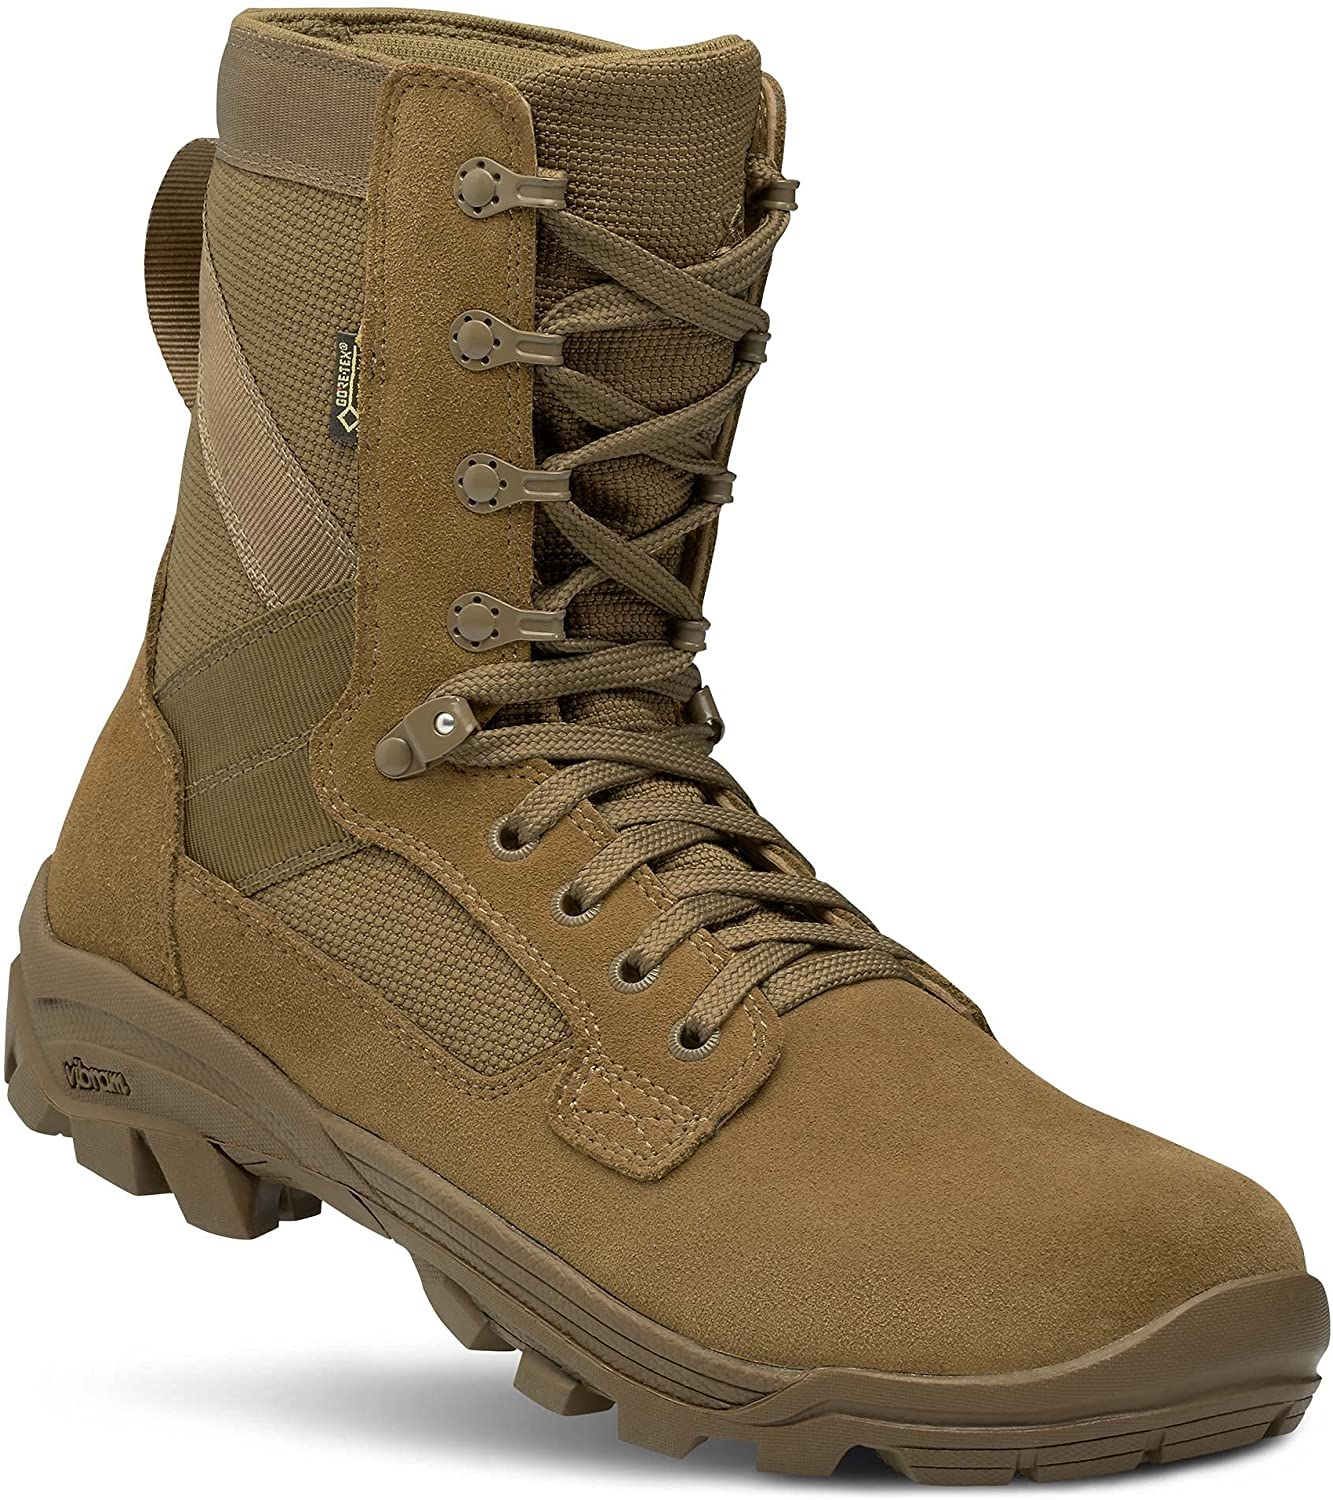 Garmont 2021 Men's T8 Extreme GTX Insulated El Paso Mall Coyote Military Tactical